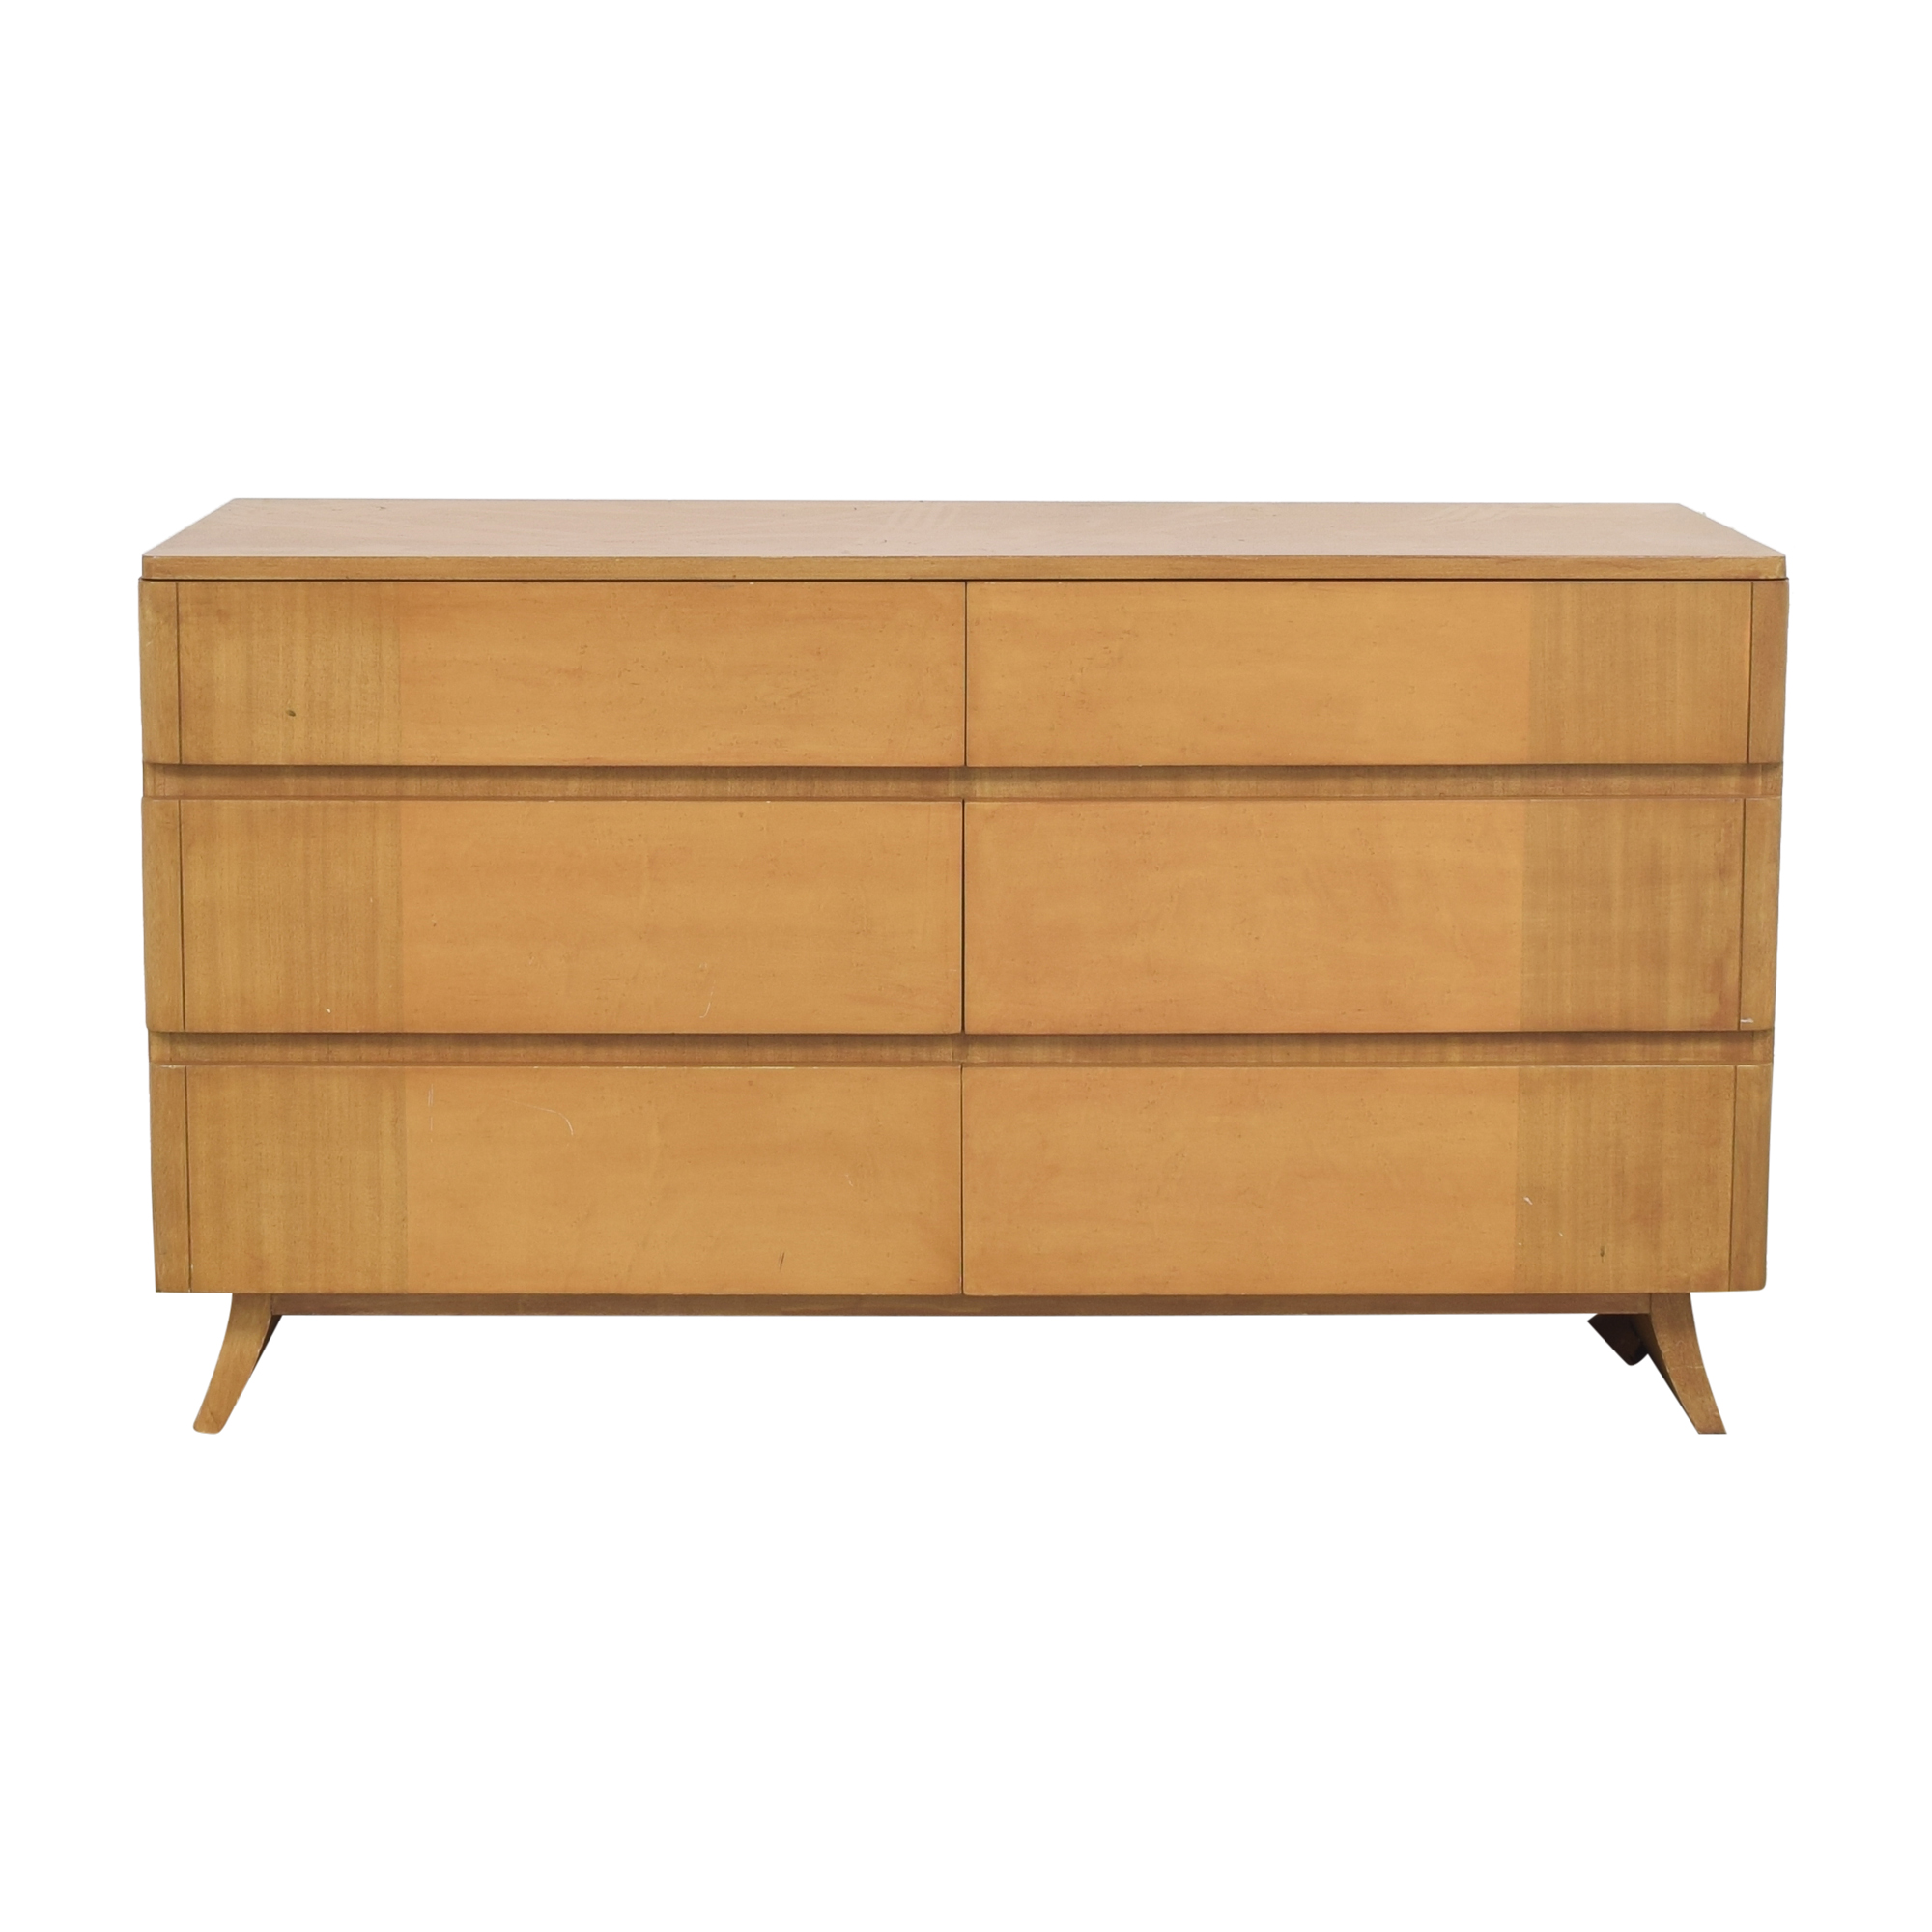 RWAY RWAY Six Drawer Double Dresser second hand